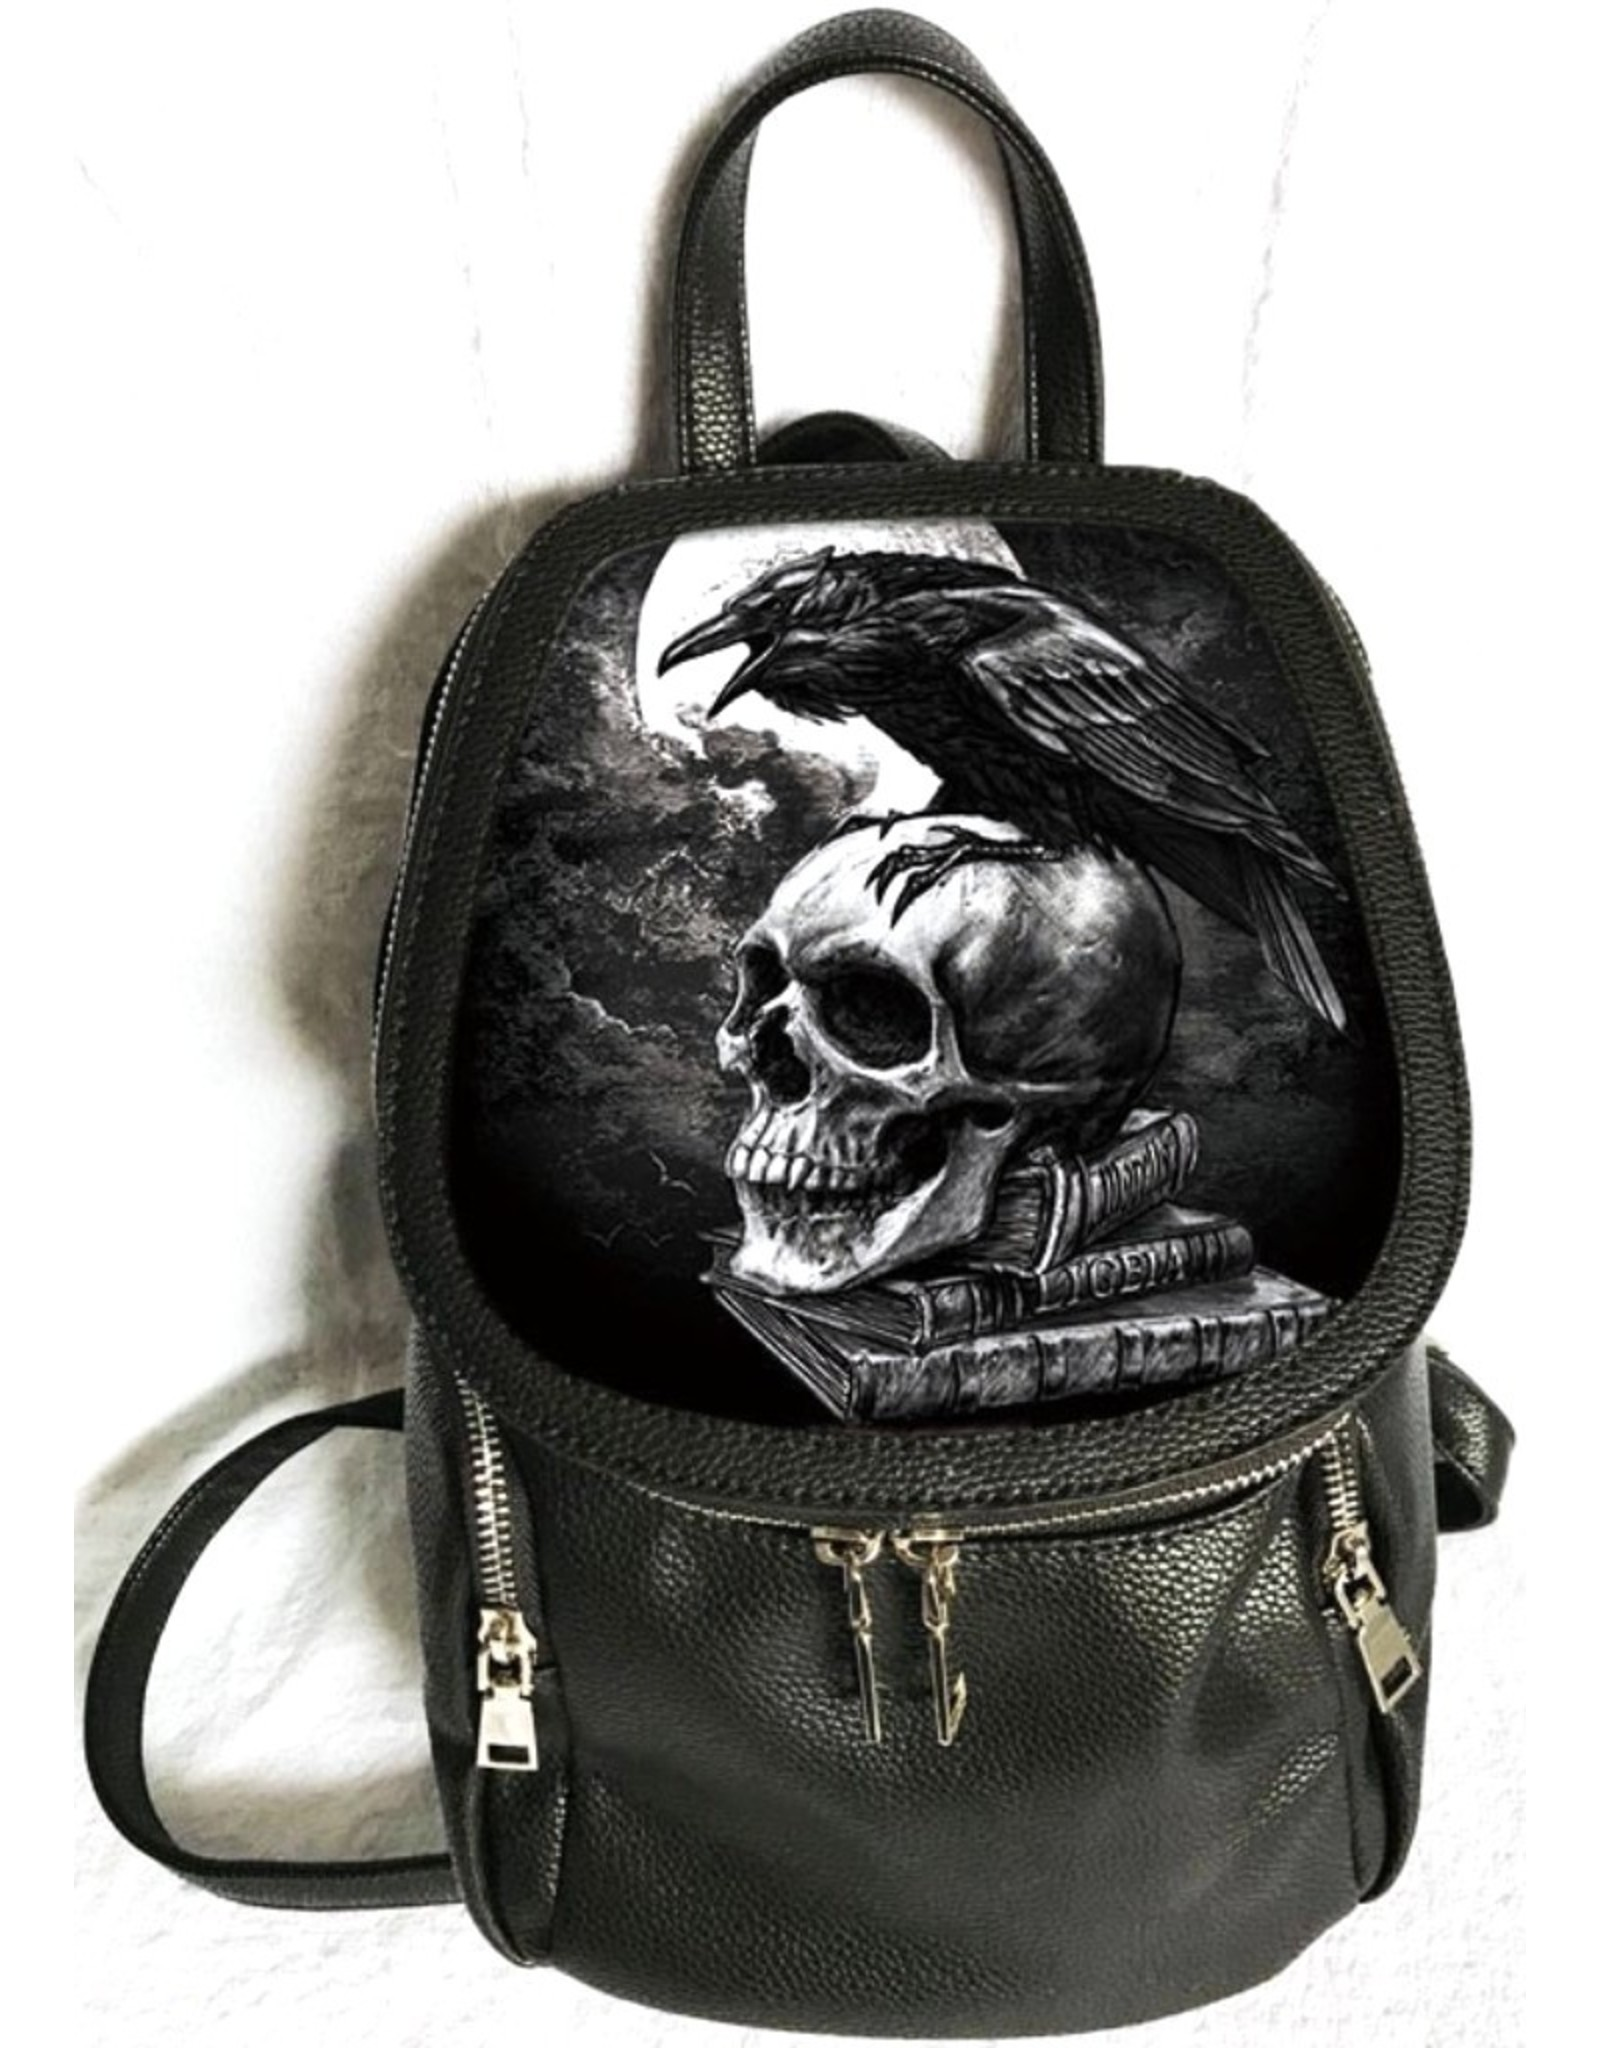 Alchemy Gothic bags Steampunk bags - Alchemy Poe's Raven 3D lenticular backpack Raven on the Skull